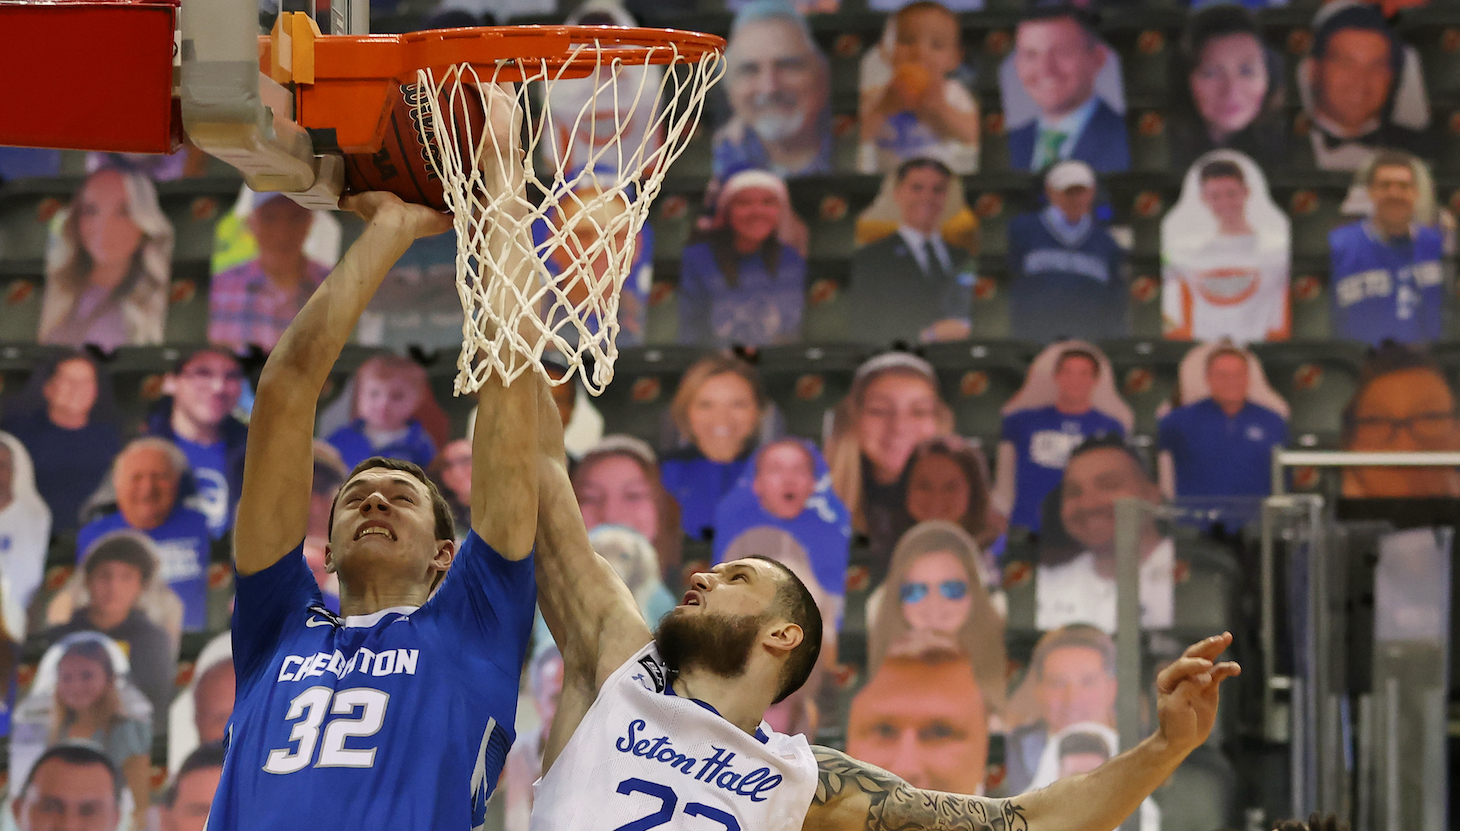 NEWARK, NJ - JANUARY 27: Sandro Mamukelashvili #23 of the Seton Hall Pirates blocks a shot by Ryan Kalkbrenner #32 of the Creighton Bluejays during the first half of an NCAA college basketball game at Prudential Center on January 27, 2021 in Newark, New Jersey. (Photo by Rich Schultz/Getty Images)